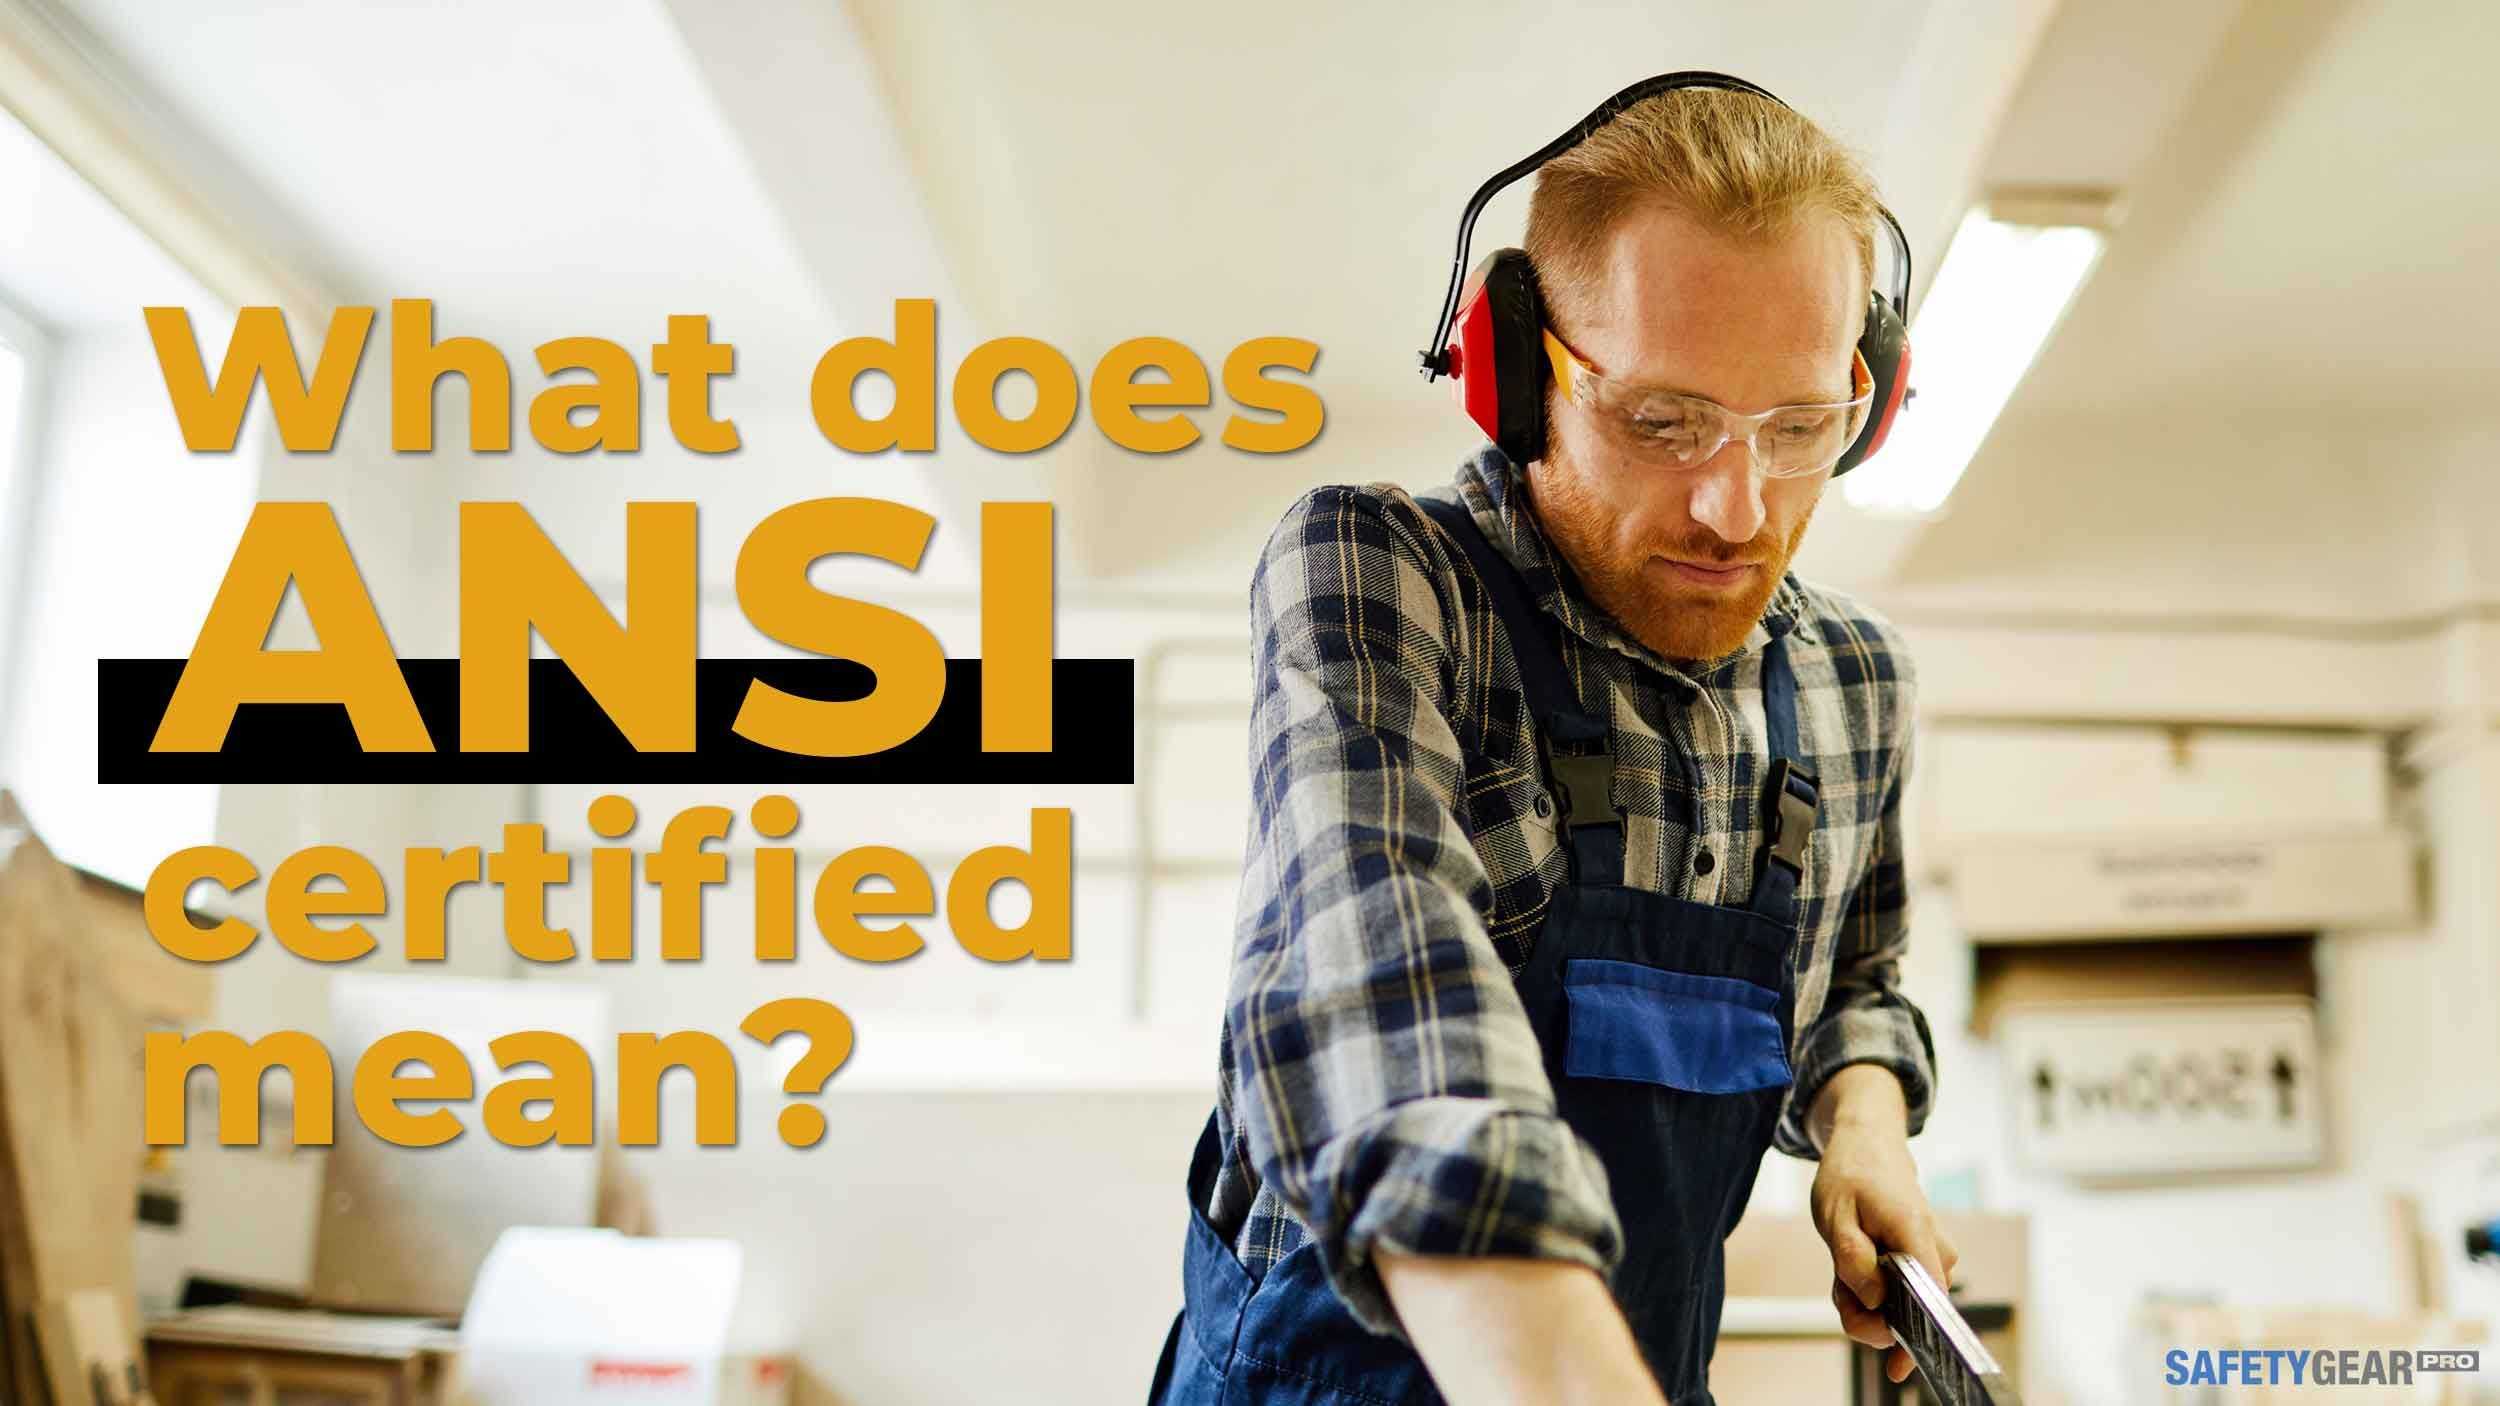 What Does ANSI Certified Mean?